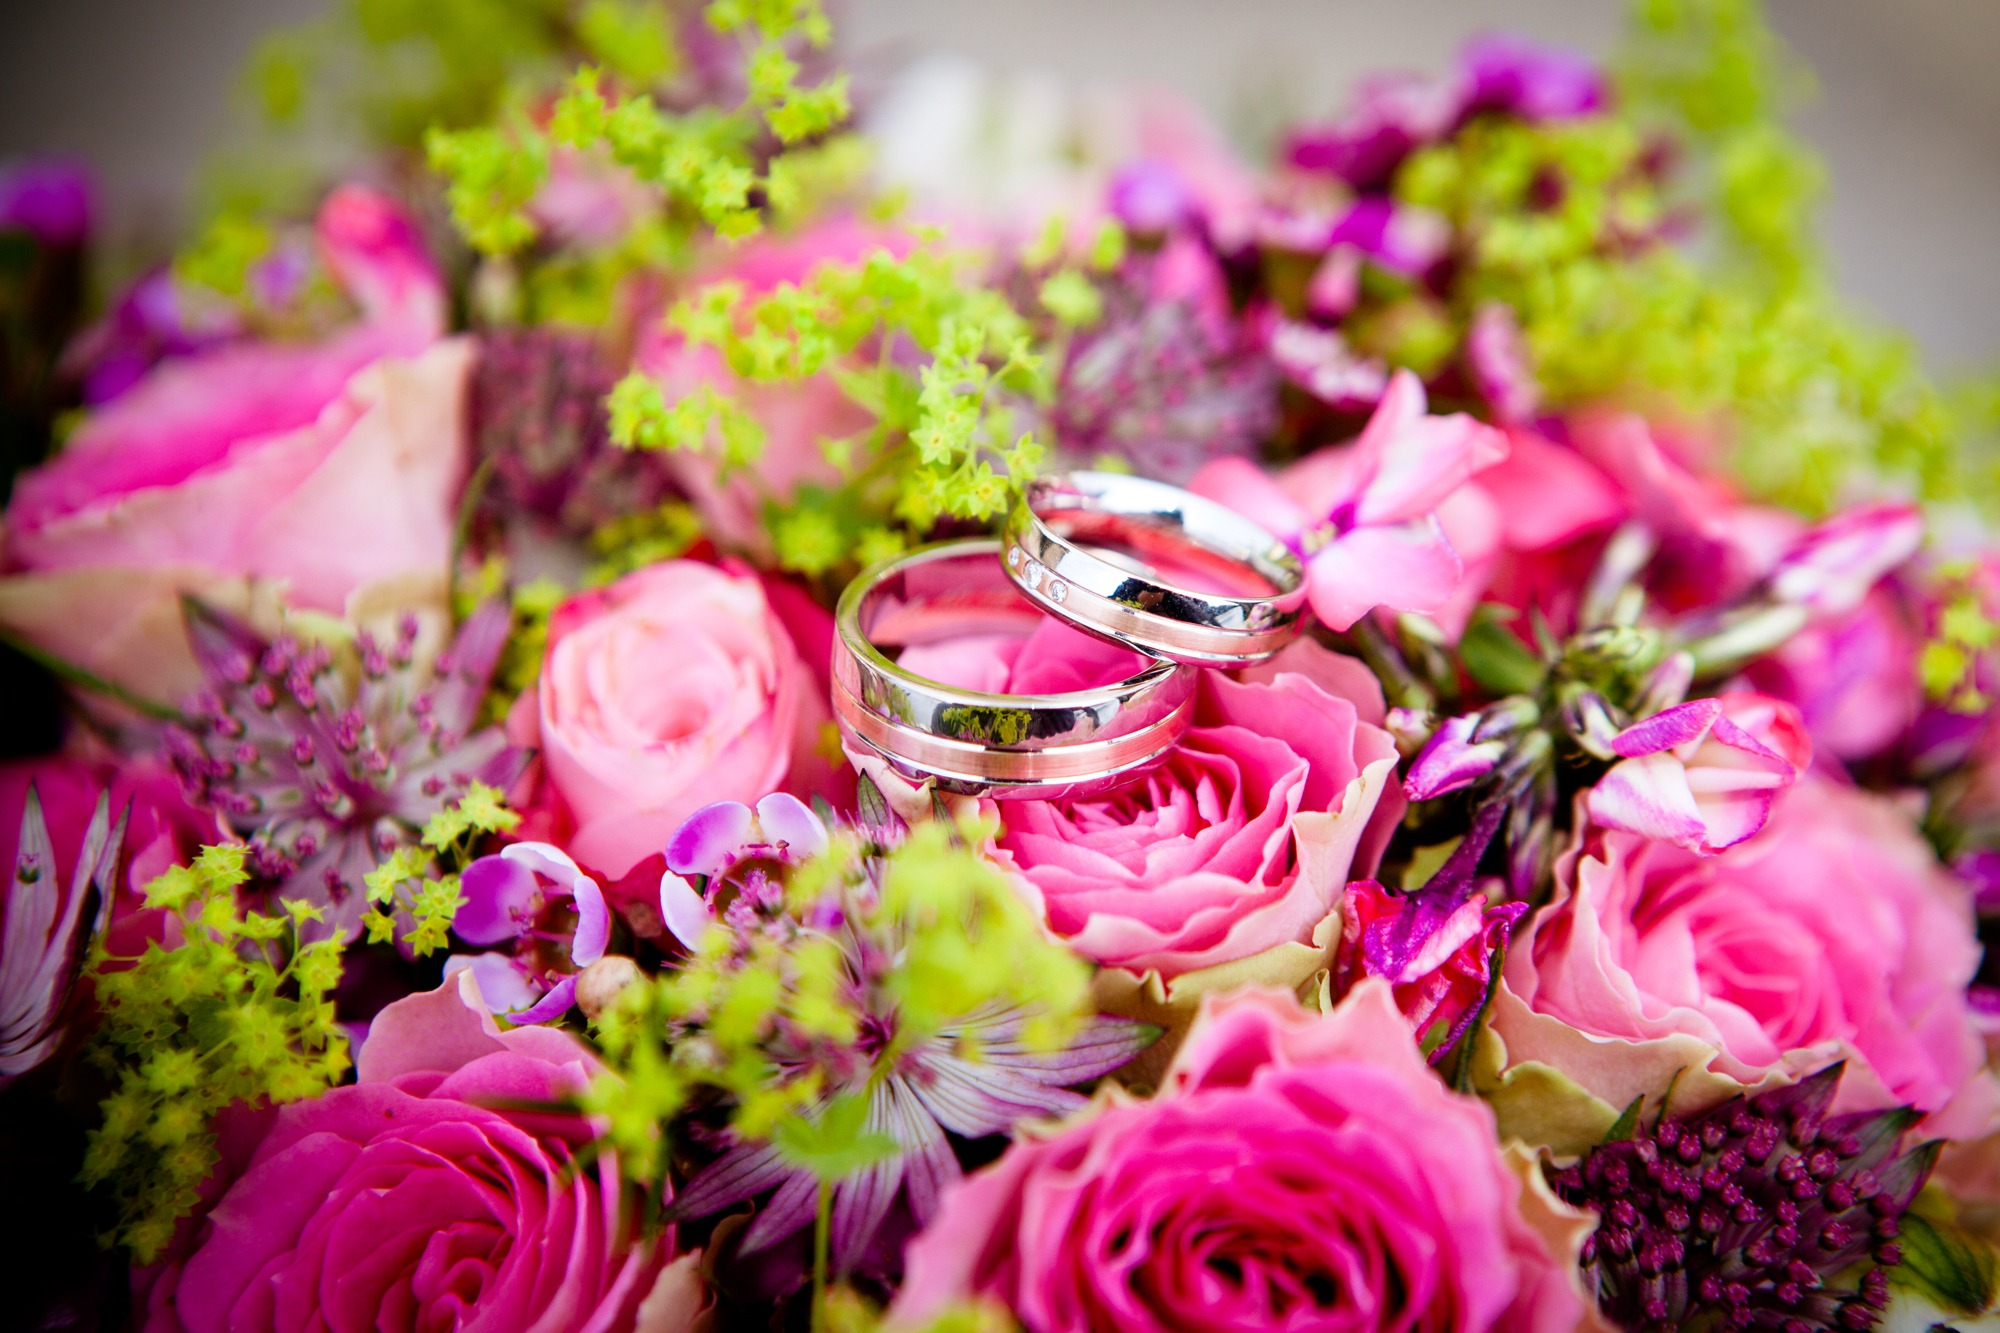 flowers-wedding-wedding-rings-bouquet-59948.jpeg (2000×1333)